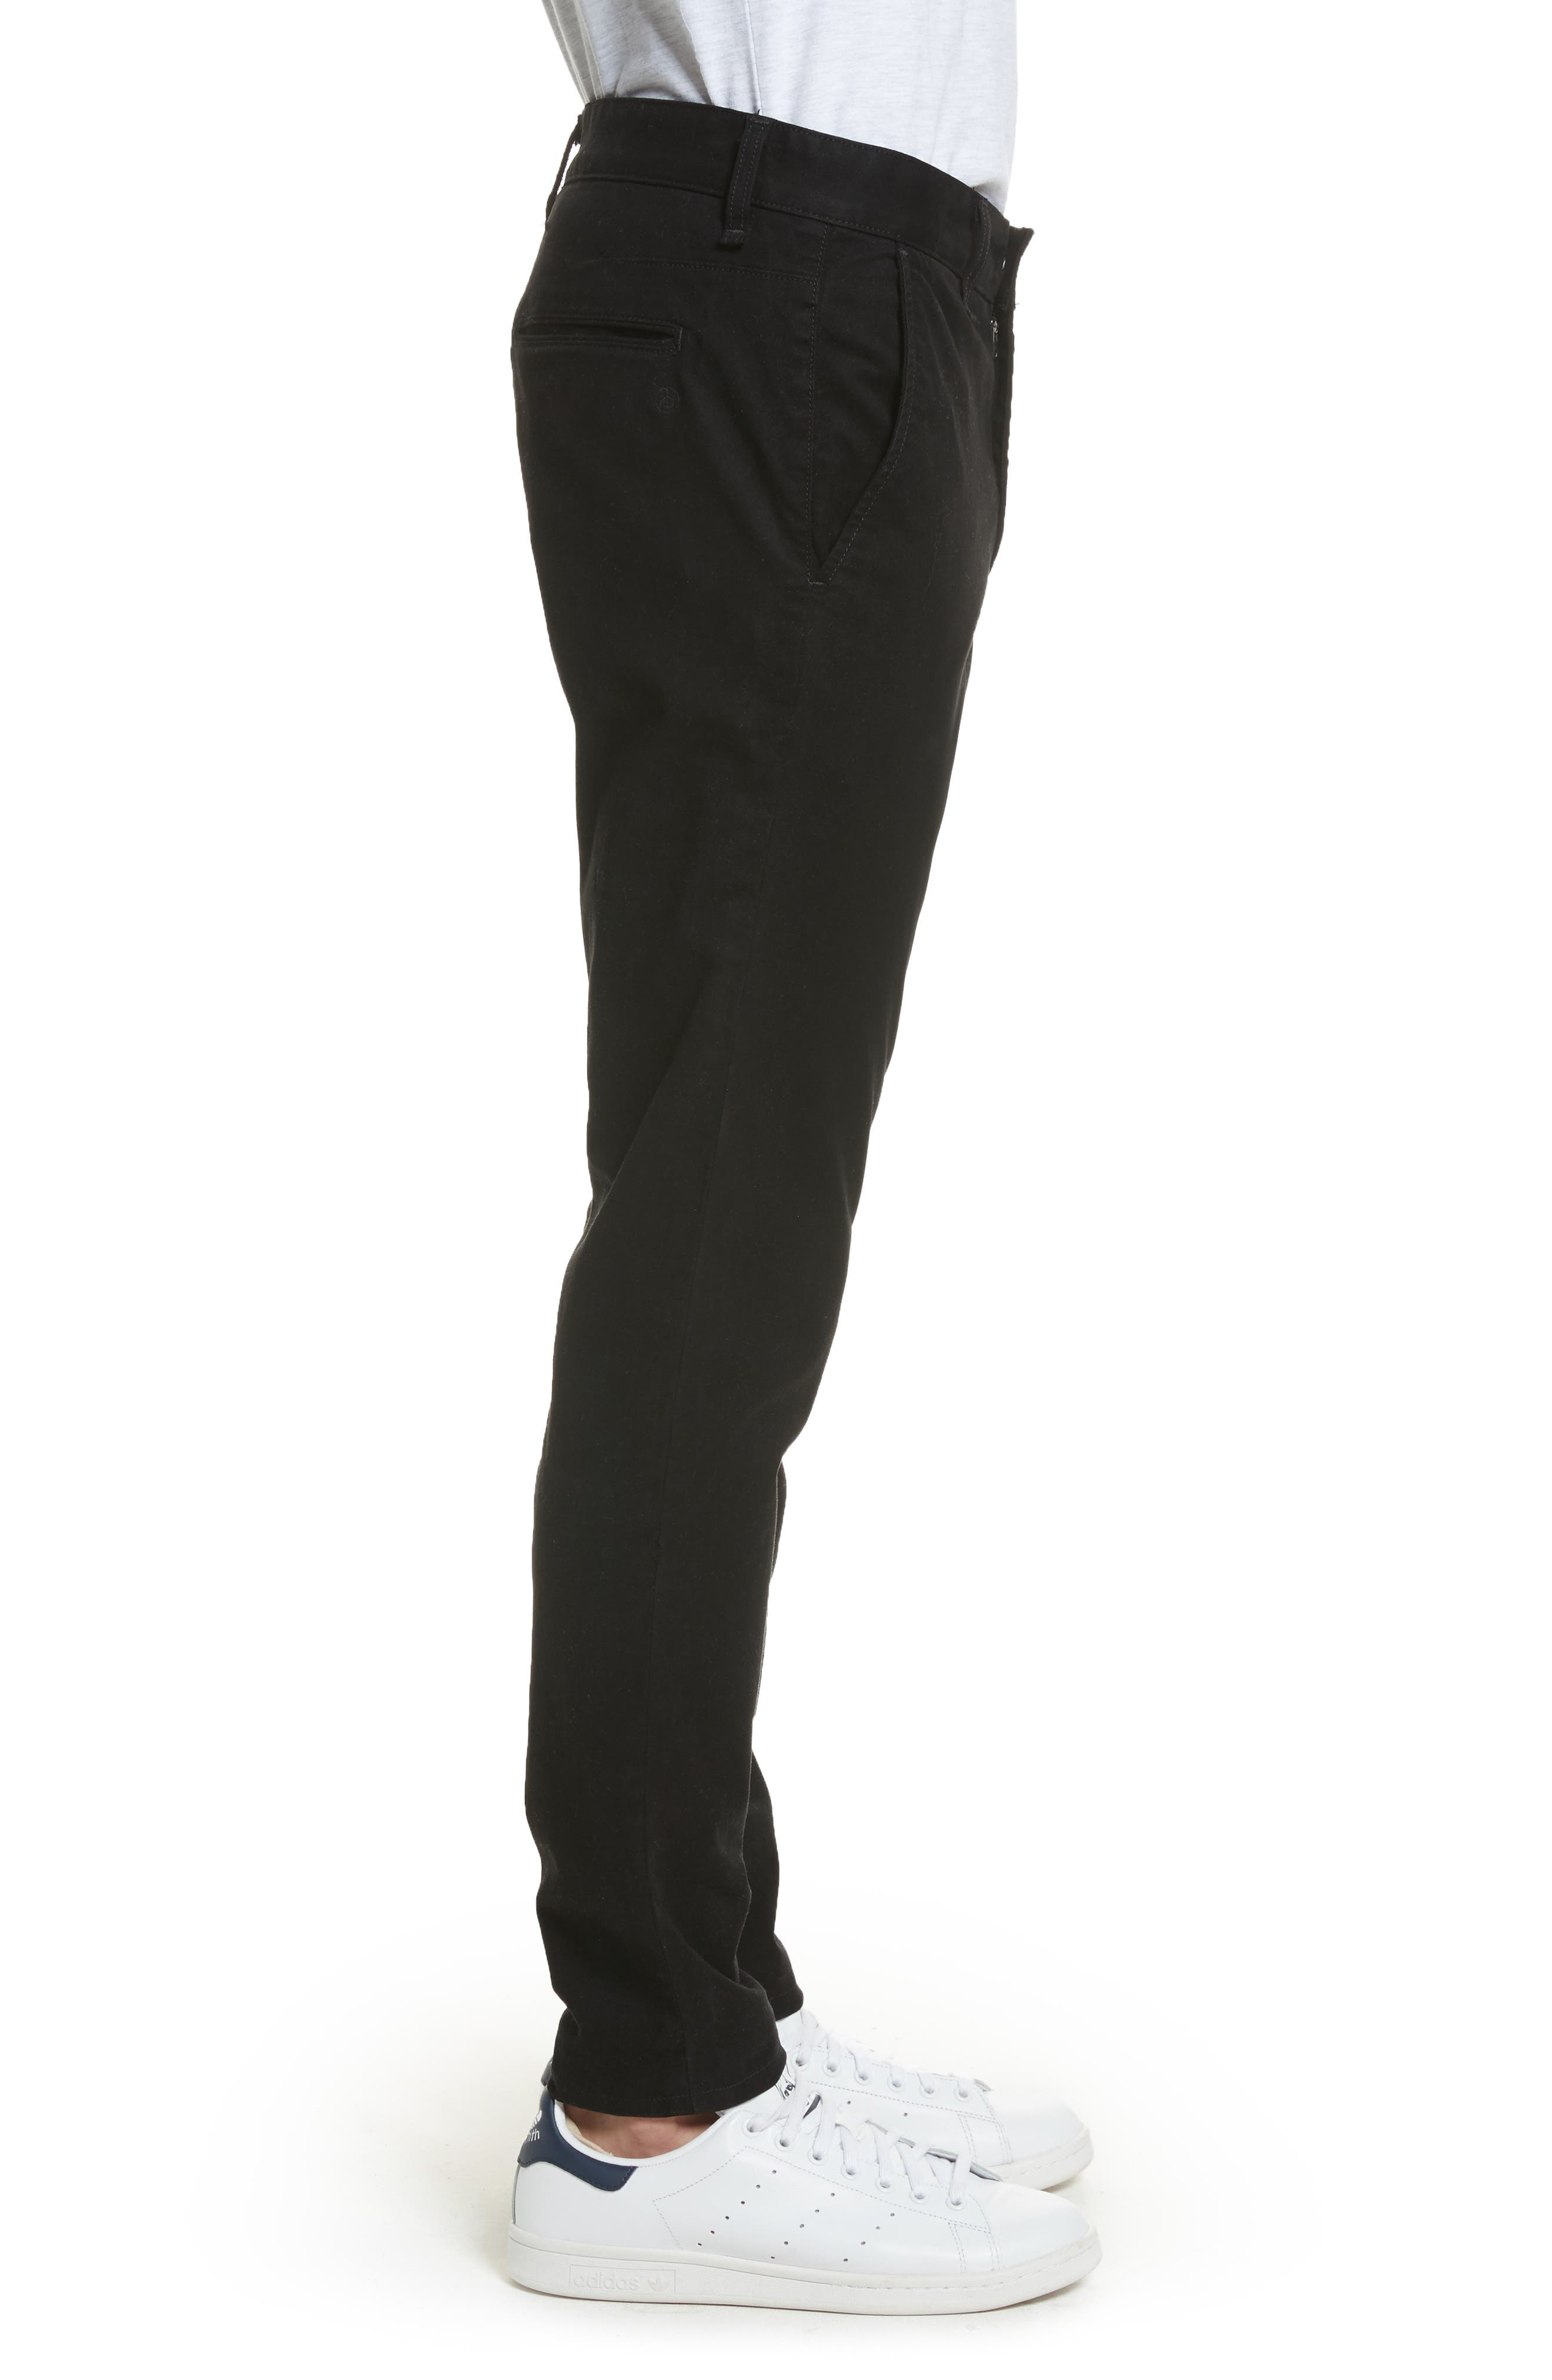 Fit 1 Chinos,                             Alternate thumbnail 3, color,                             Black